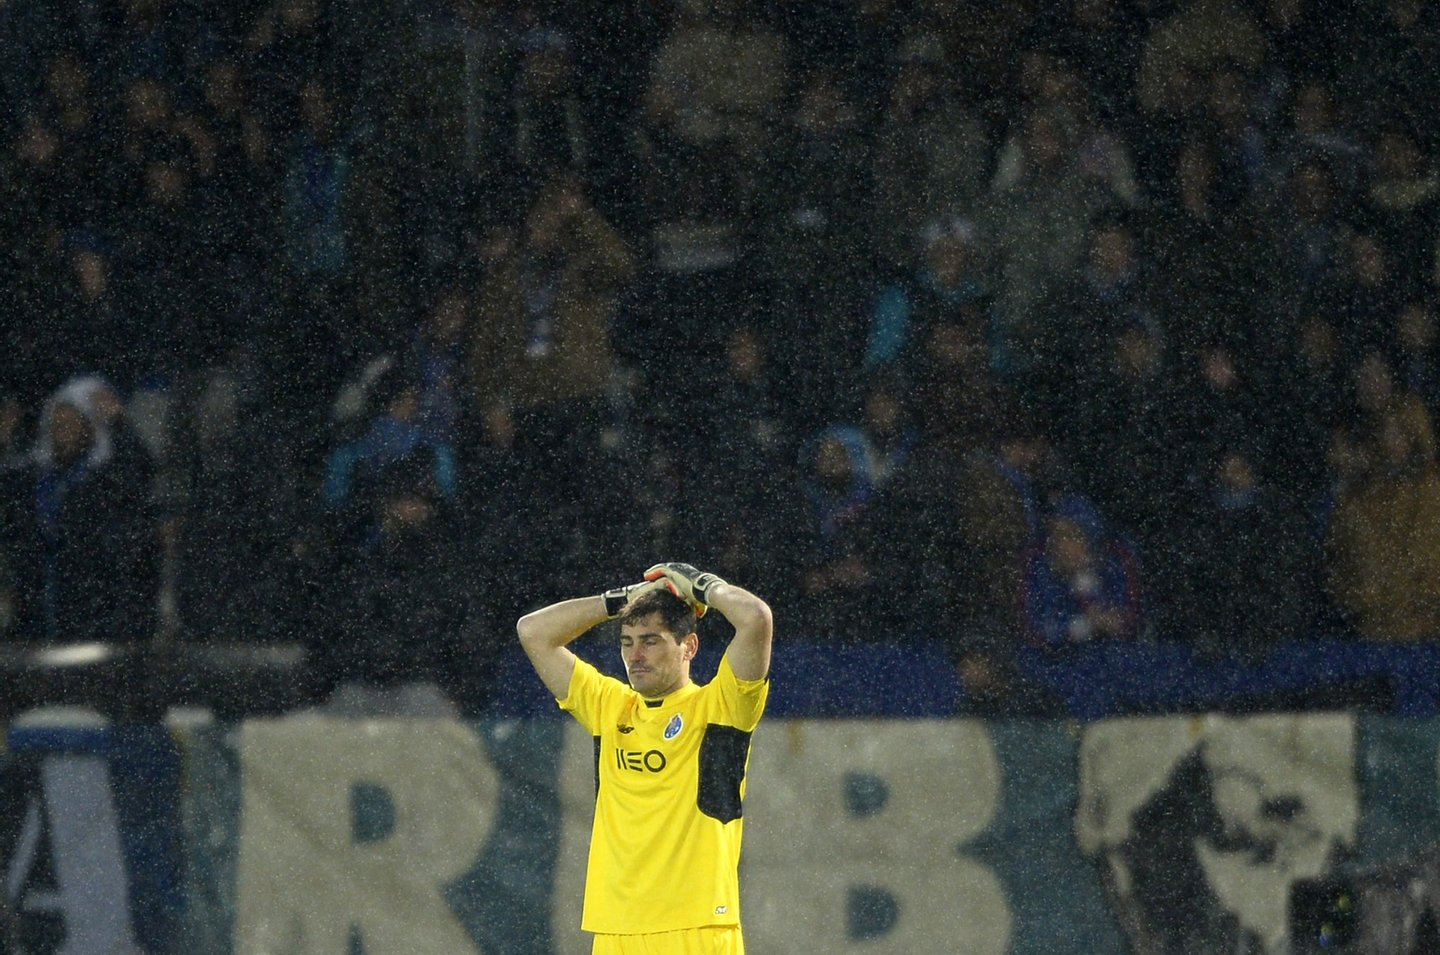 Porto's Spanish goalkeeper Iker Casillas gestures at the end of the Portuguese league football match Vitoria Guimaraes SC vs FC Porto at the Dom Alfonso Henriques stadium in Guimaraes on January 17, 2016. Vitoria won the match 1-0. AFP PHOTO/ MIGUEL RIOPA / AFP / MIGUEL RIOPA (Photo credit should read MIGUEL RIOPA/AFP/Getty Images)